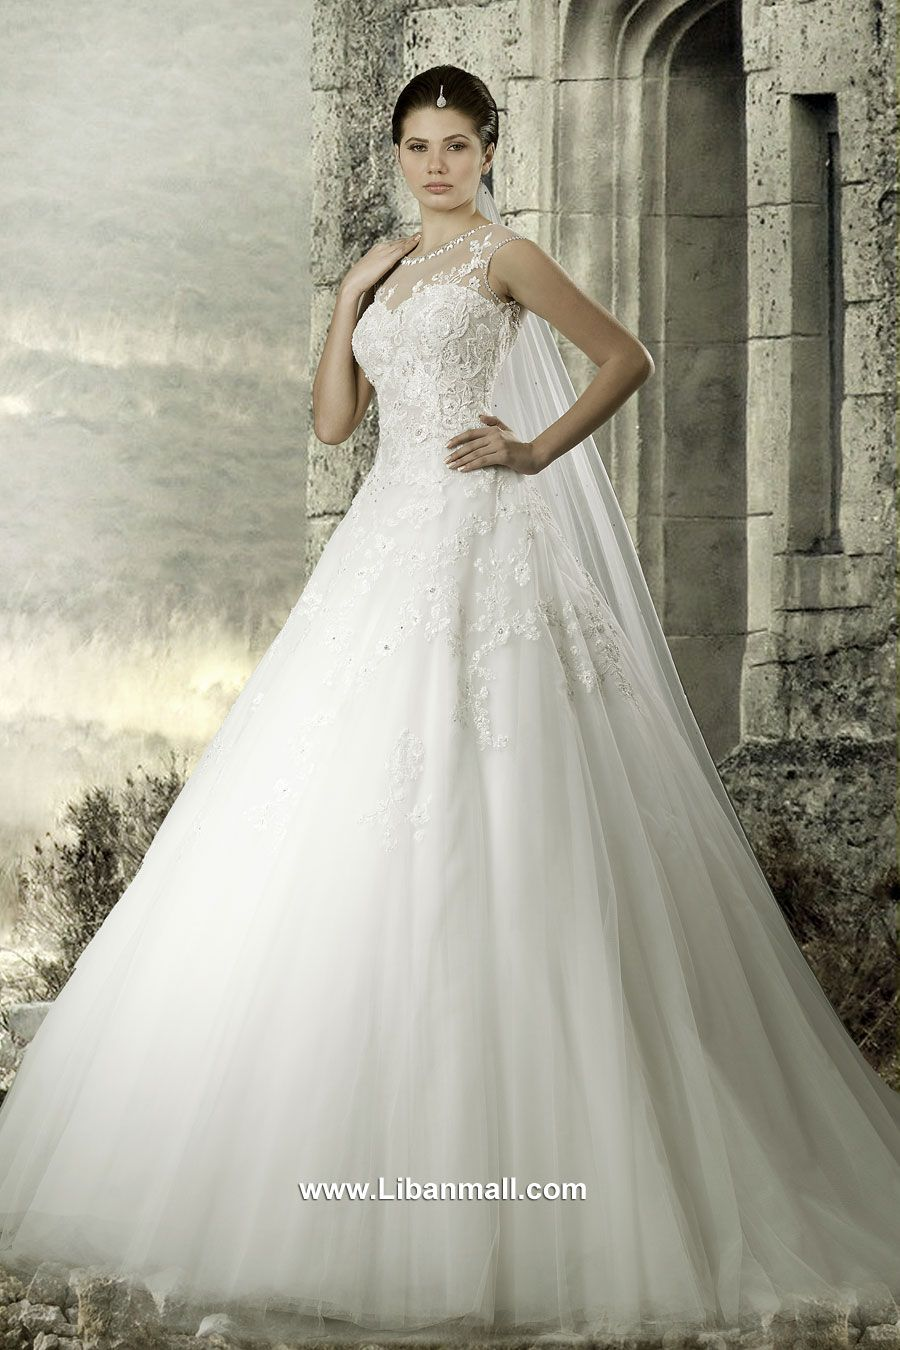 Couture Haute wedding dresses lebanon pictures video